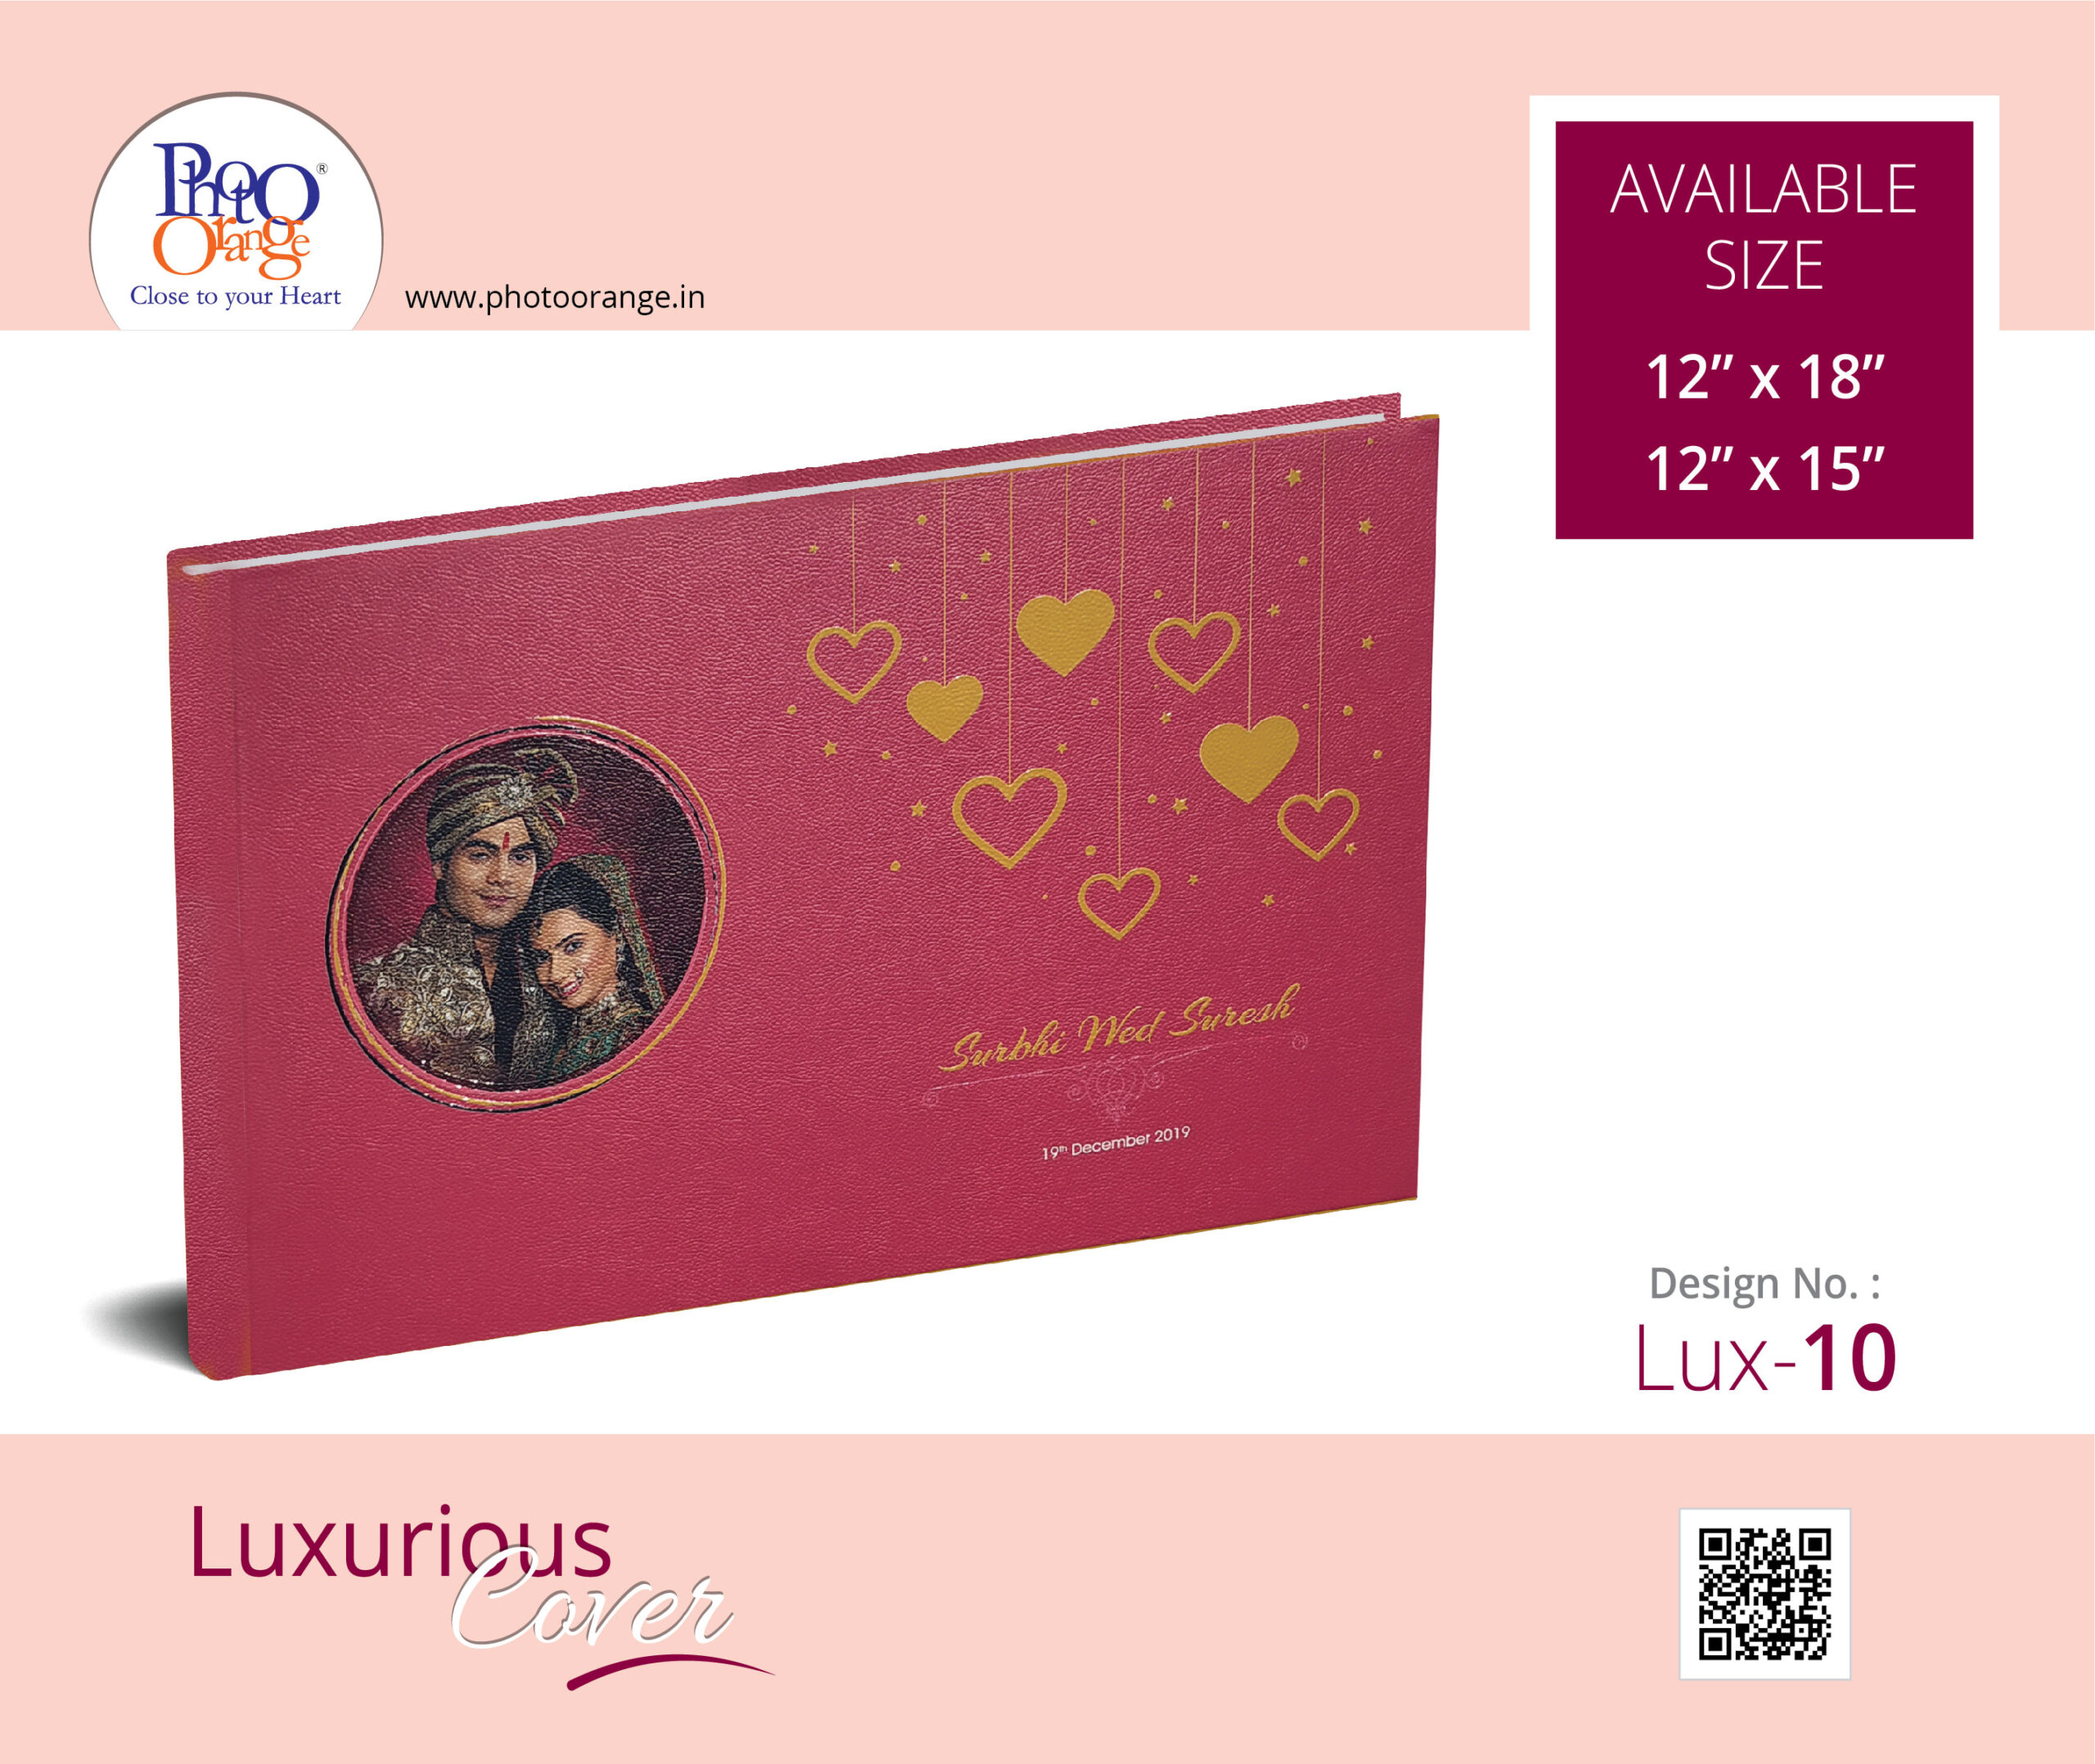 Luxurious Covers